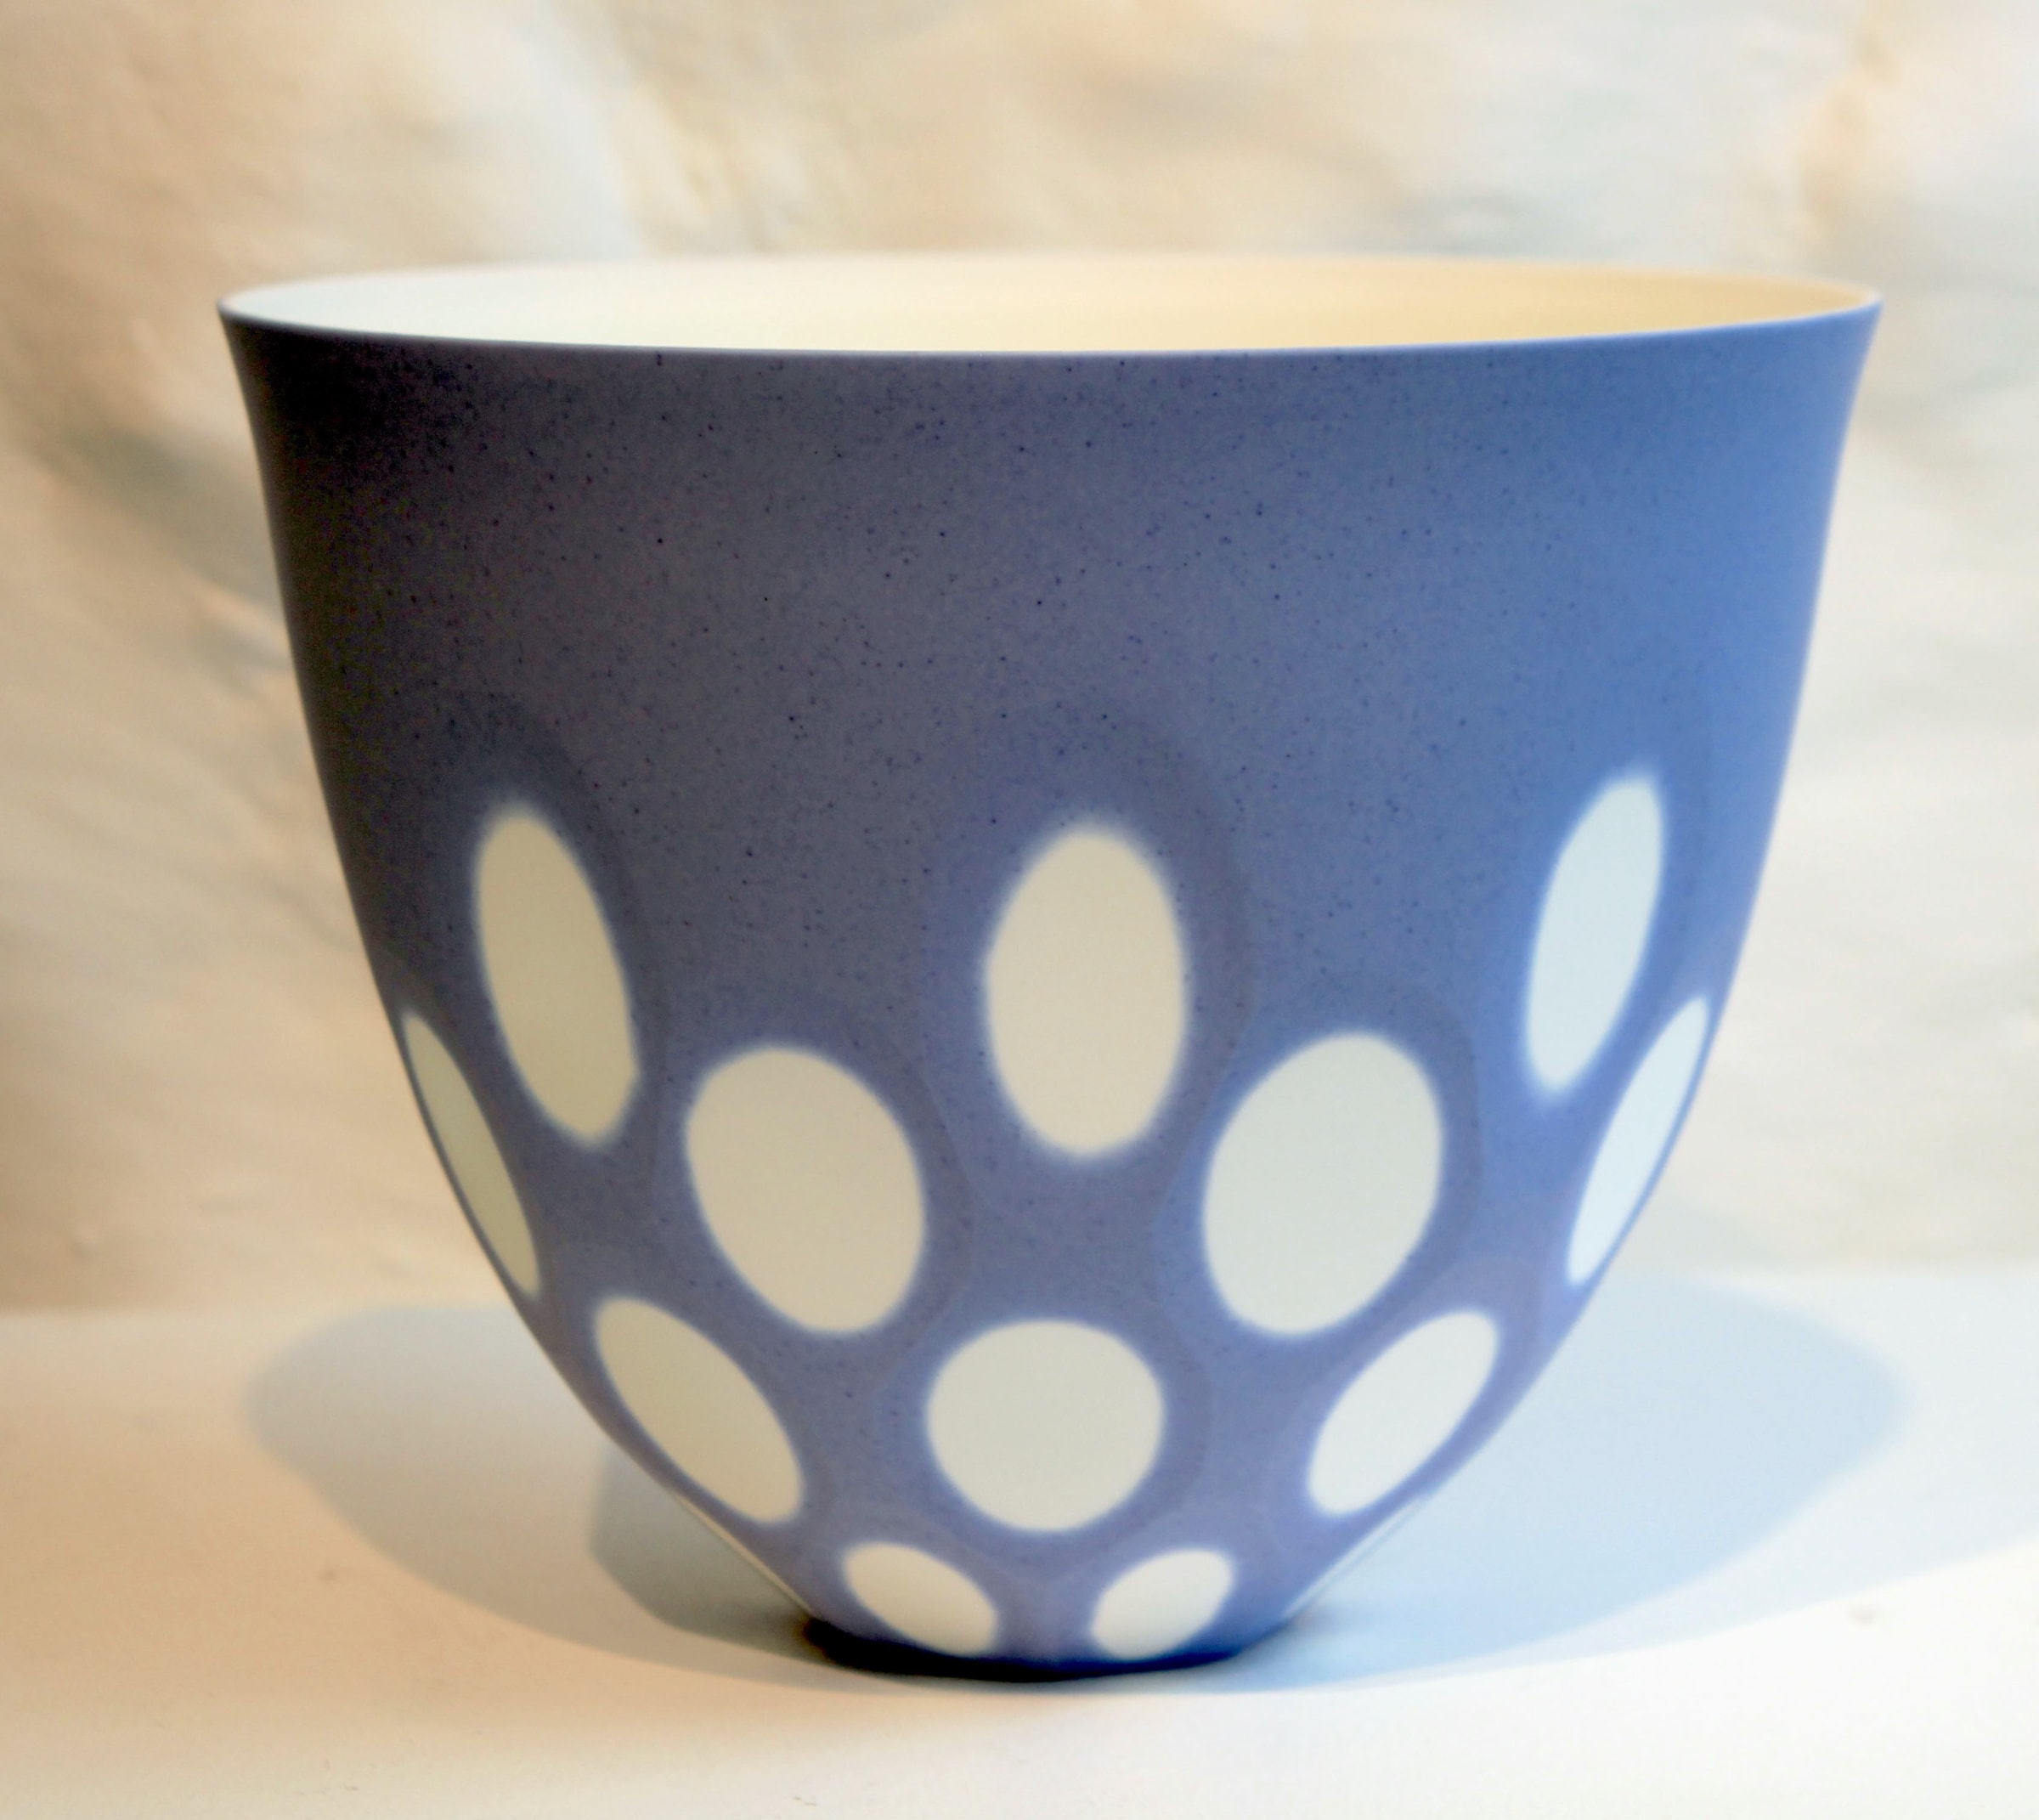 """<span class=""""link fancybox-details-link""""><a href=""""/artists/60-sasha-wardell/works/5496-sasha-wardell-two-layer-space-bowl-2018/"""">View Detail Page</a></span><div class=""""artist""""><strong>Sasha Wardell</strong></div> b. 1956 <div class=""""title""""><em>Two Layer Space Bowl</em>, 2018</div> <div class=""""signed_and_dated"""">inscribed with artist initials on base</div> <div class=""""medium"""">lavender/white layered & sliced bone china</div> <div class=""""dimensions"""">15 x 17 cm<br /> 5 7/8 x 6 3/4 inches</div><div class=""""price"""">£165.00</div><div class=""""copyright_line"""">OwnArt: £ 16.5 x 10 Months, 0% APR</div>"""